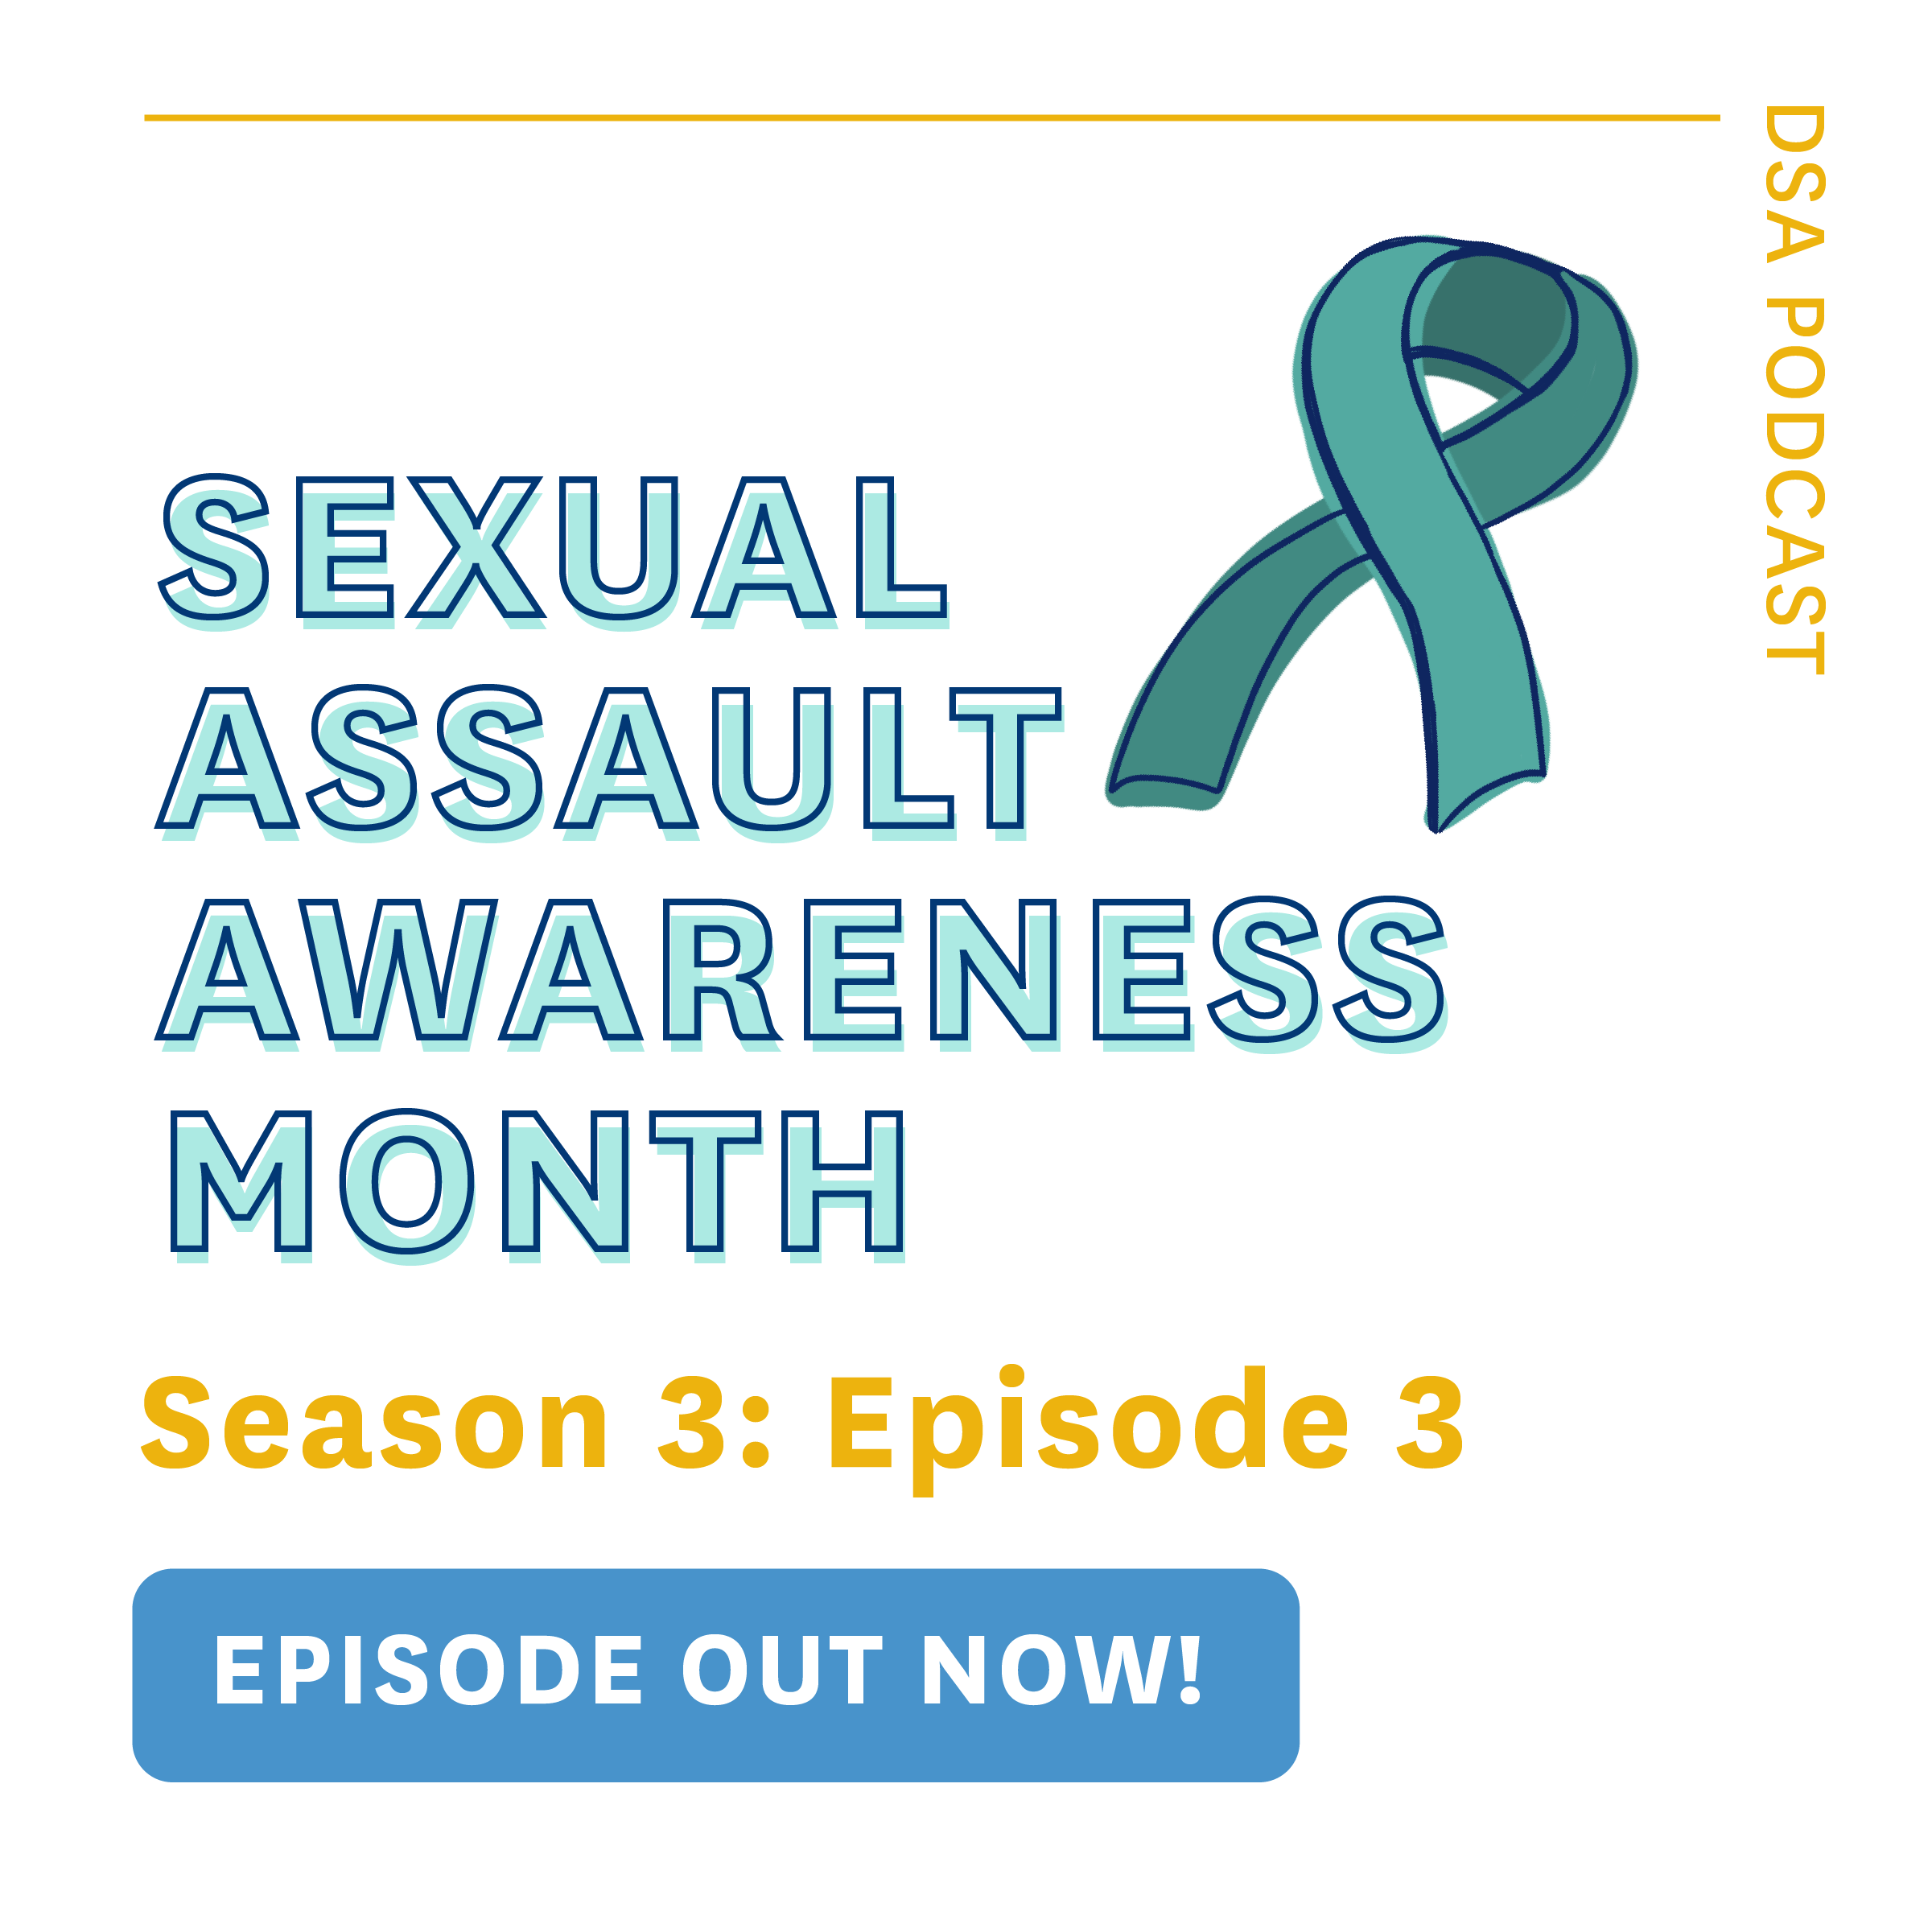 Sexual Assault Awareness Month, Episode Out Now